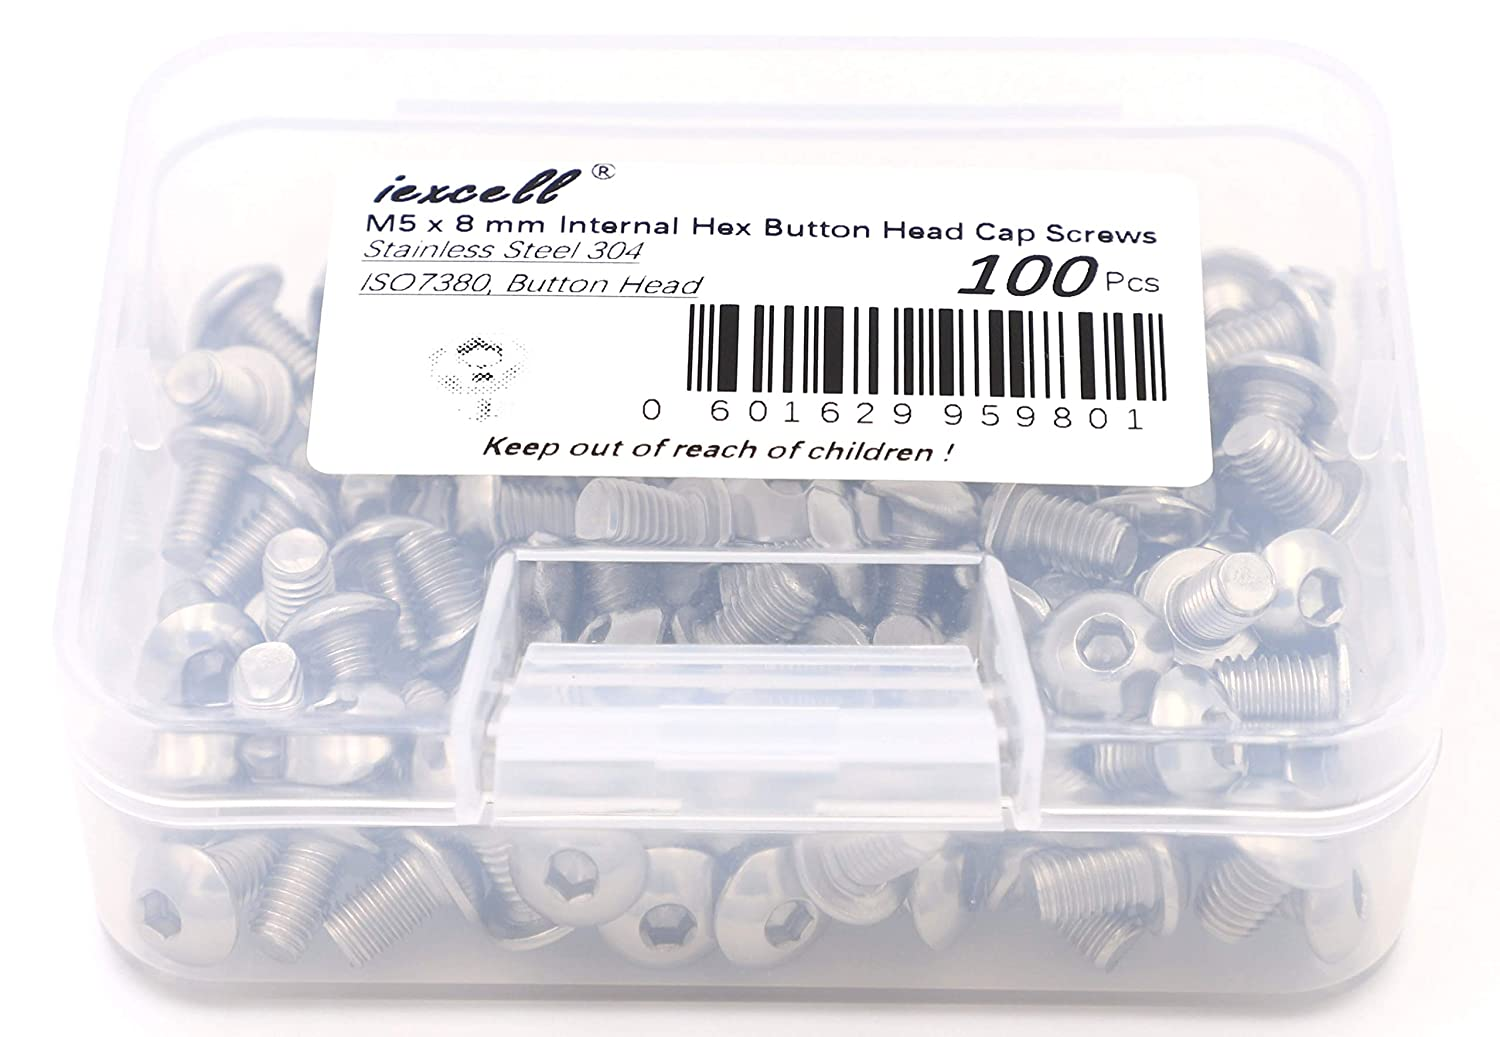 1 Rows Header DW-02-15-G-S-360 DW-02-15-G-S-360 Board-To-Board Connector 2.54 mm Through Hole 2 Contacts DW Series Pack of 100